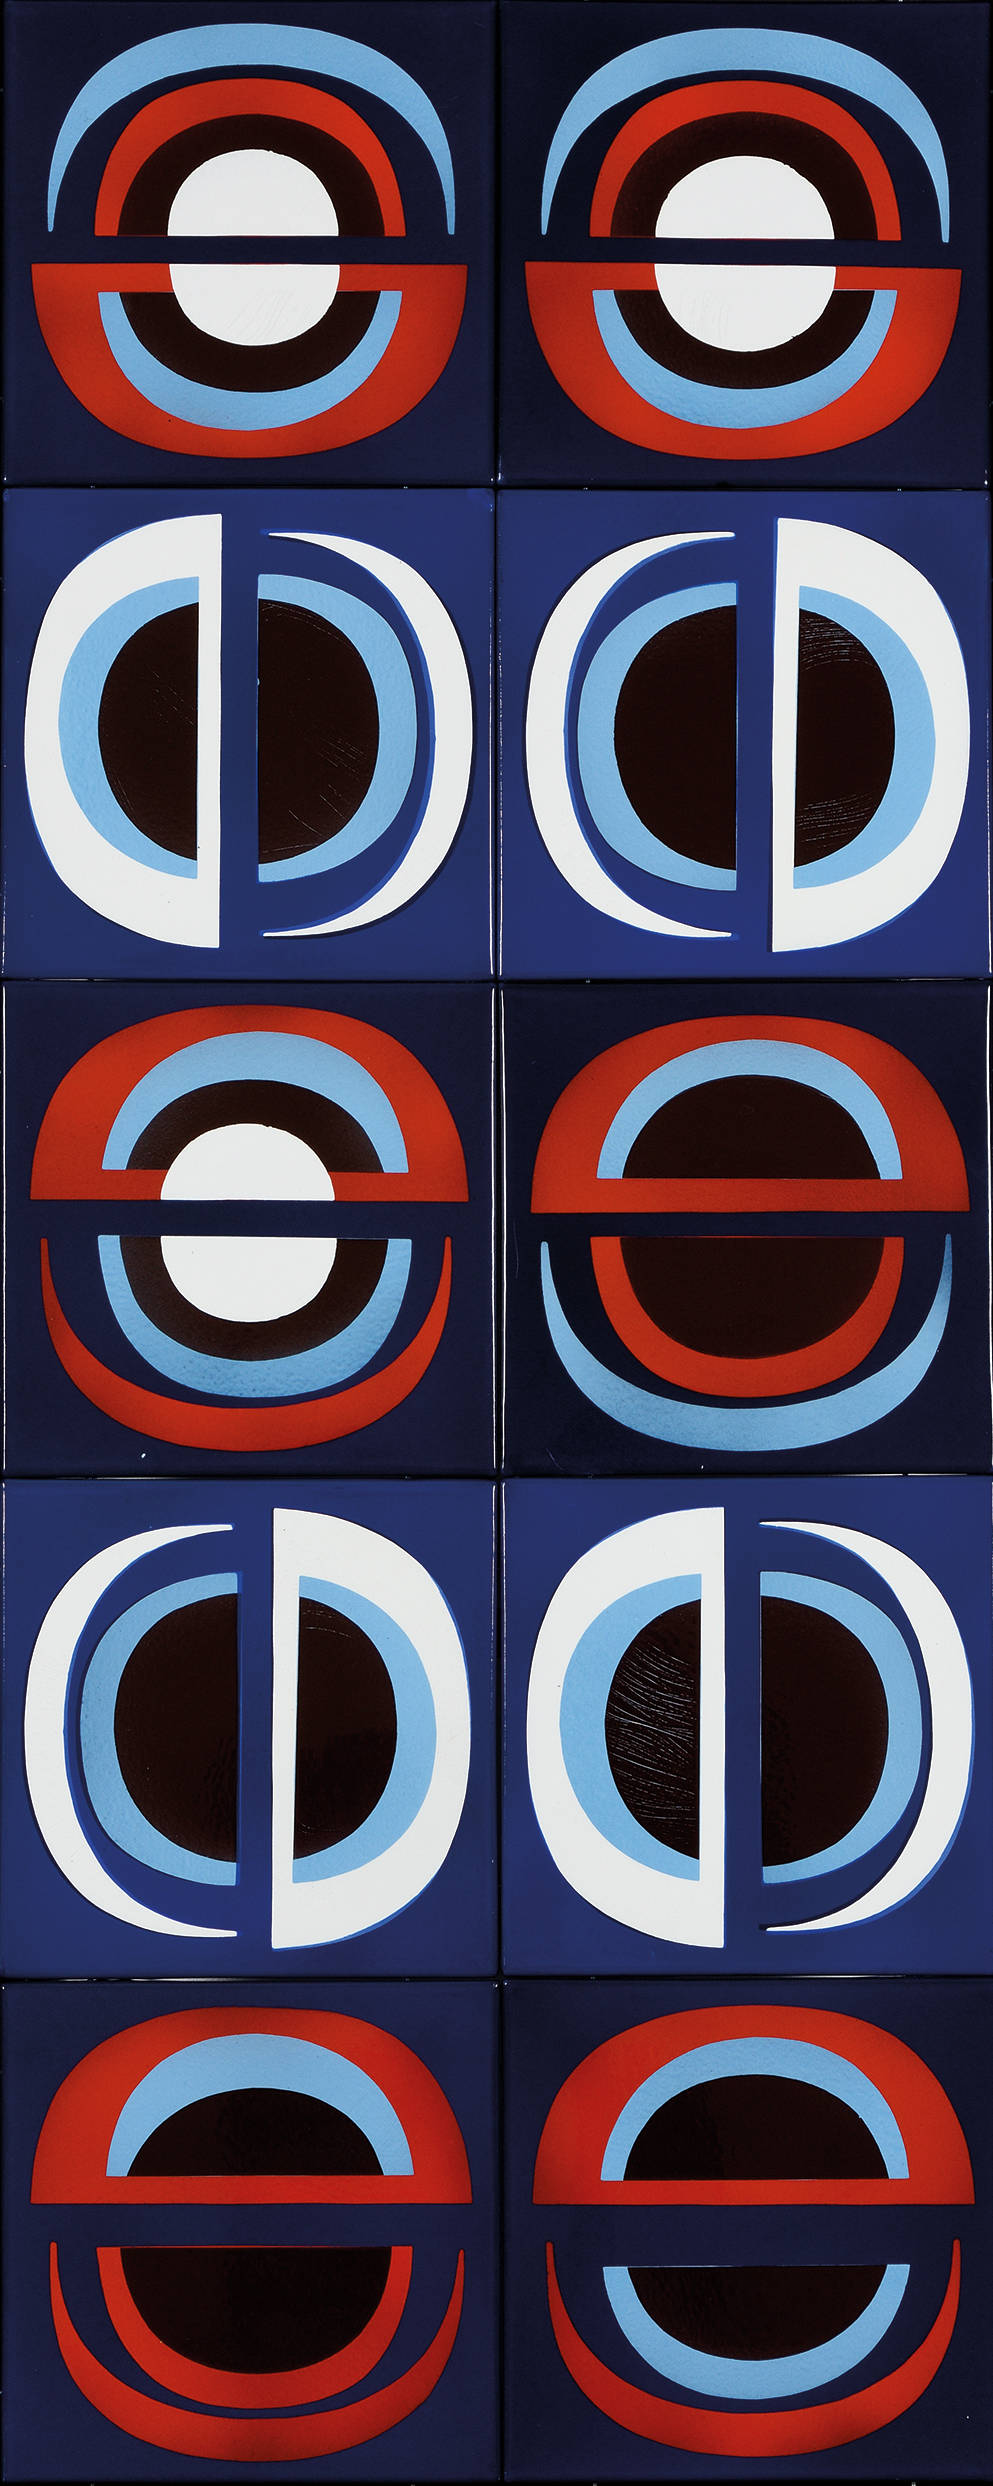 Ferenc Lantos, Untitled, 1969. Enamel on iron plate 154 x 63.5 cm, 60 1/2 x 25 inches